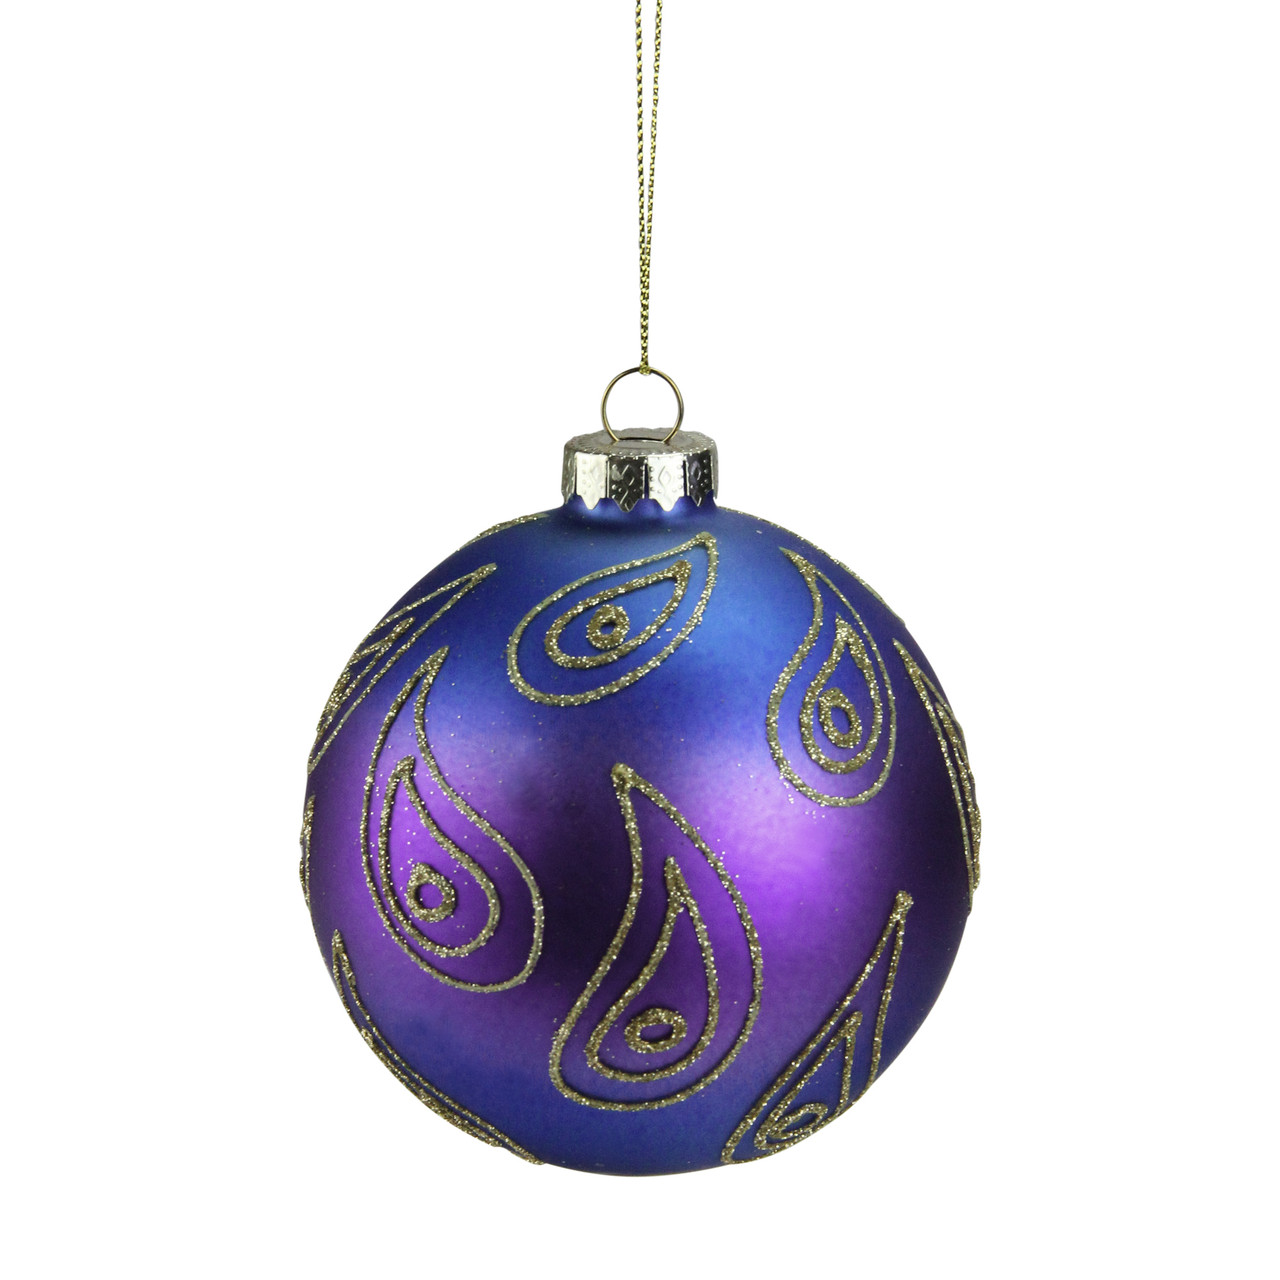 northlight - Blue And Gold Christmas Decorations